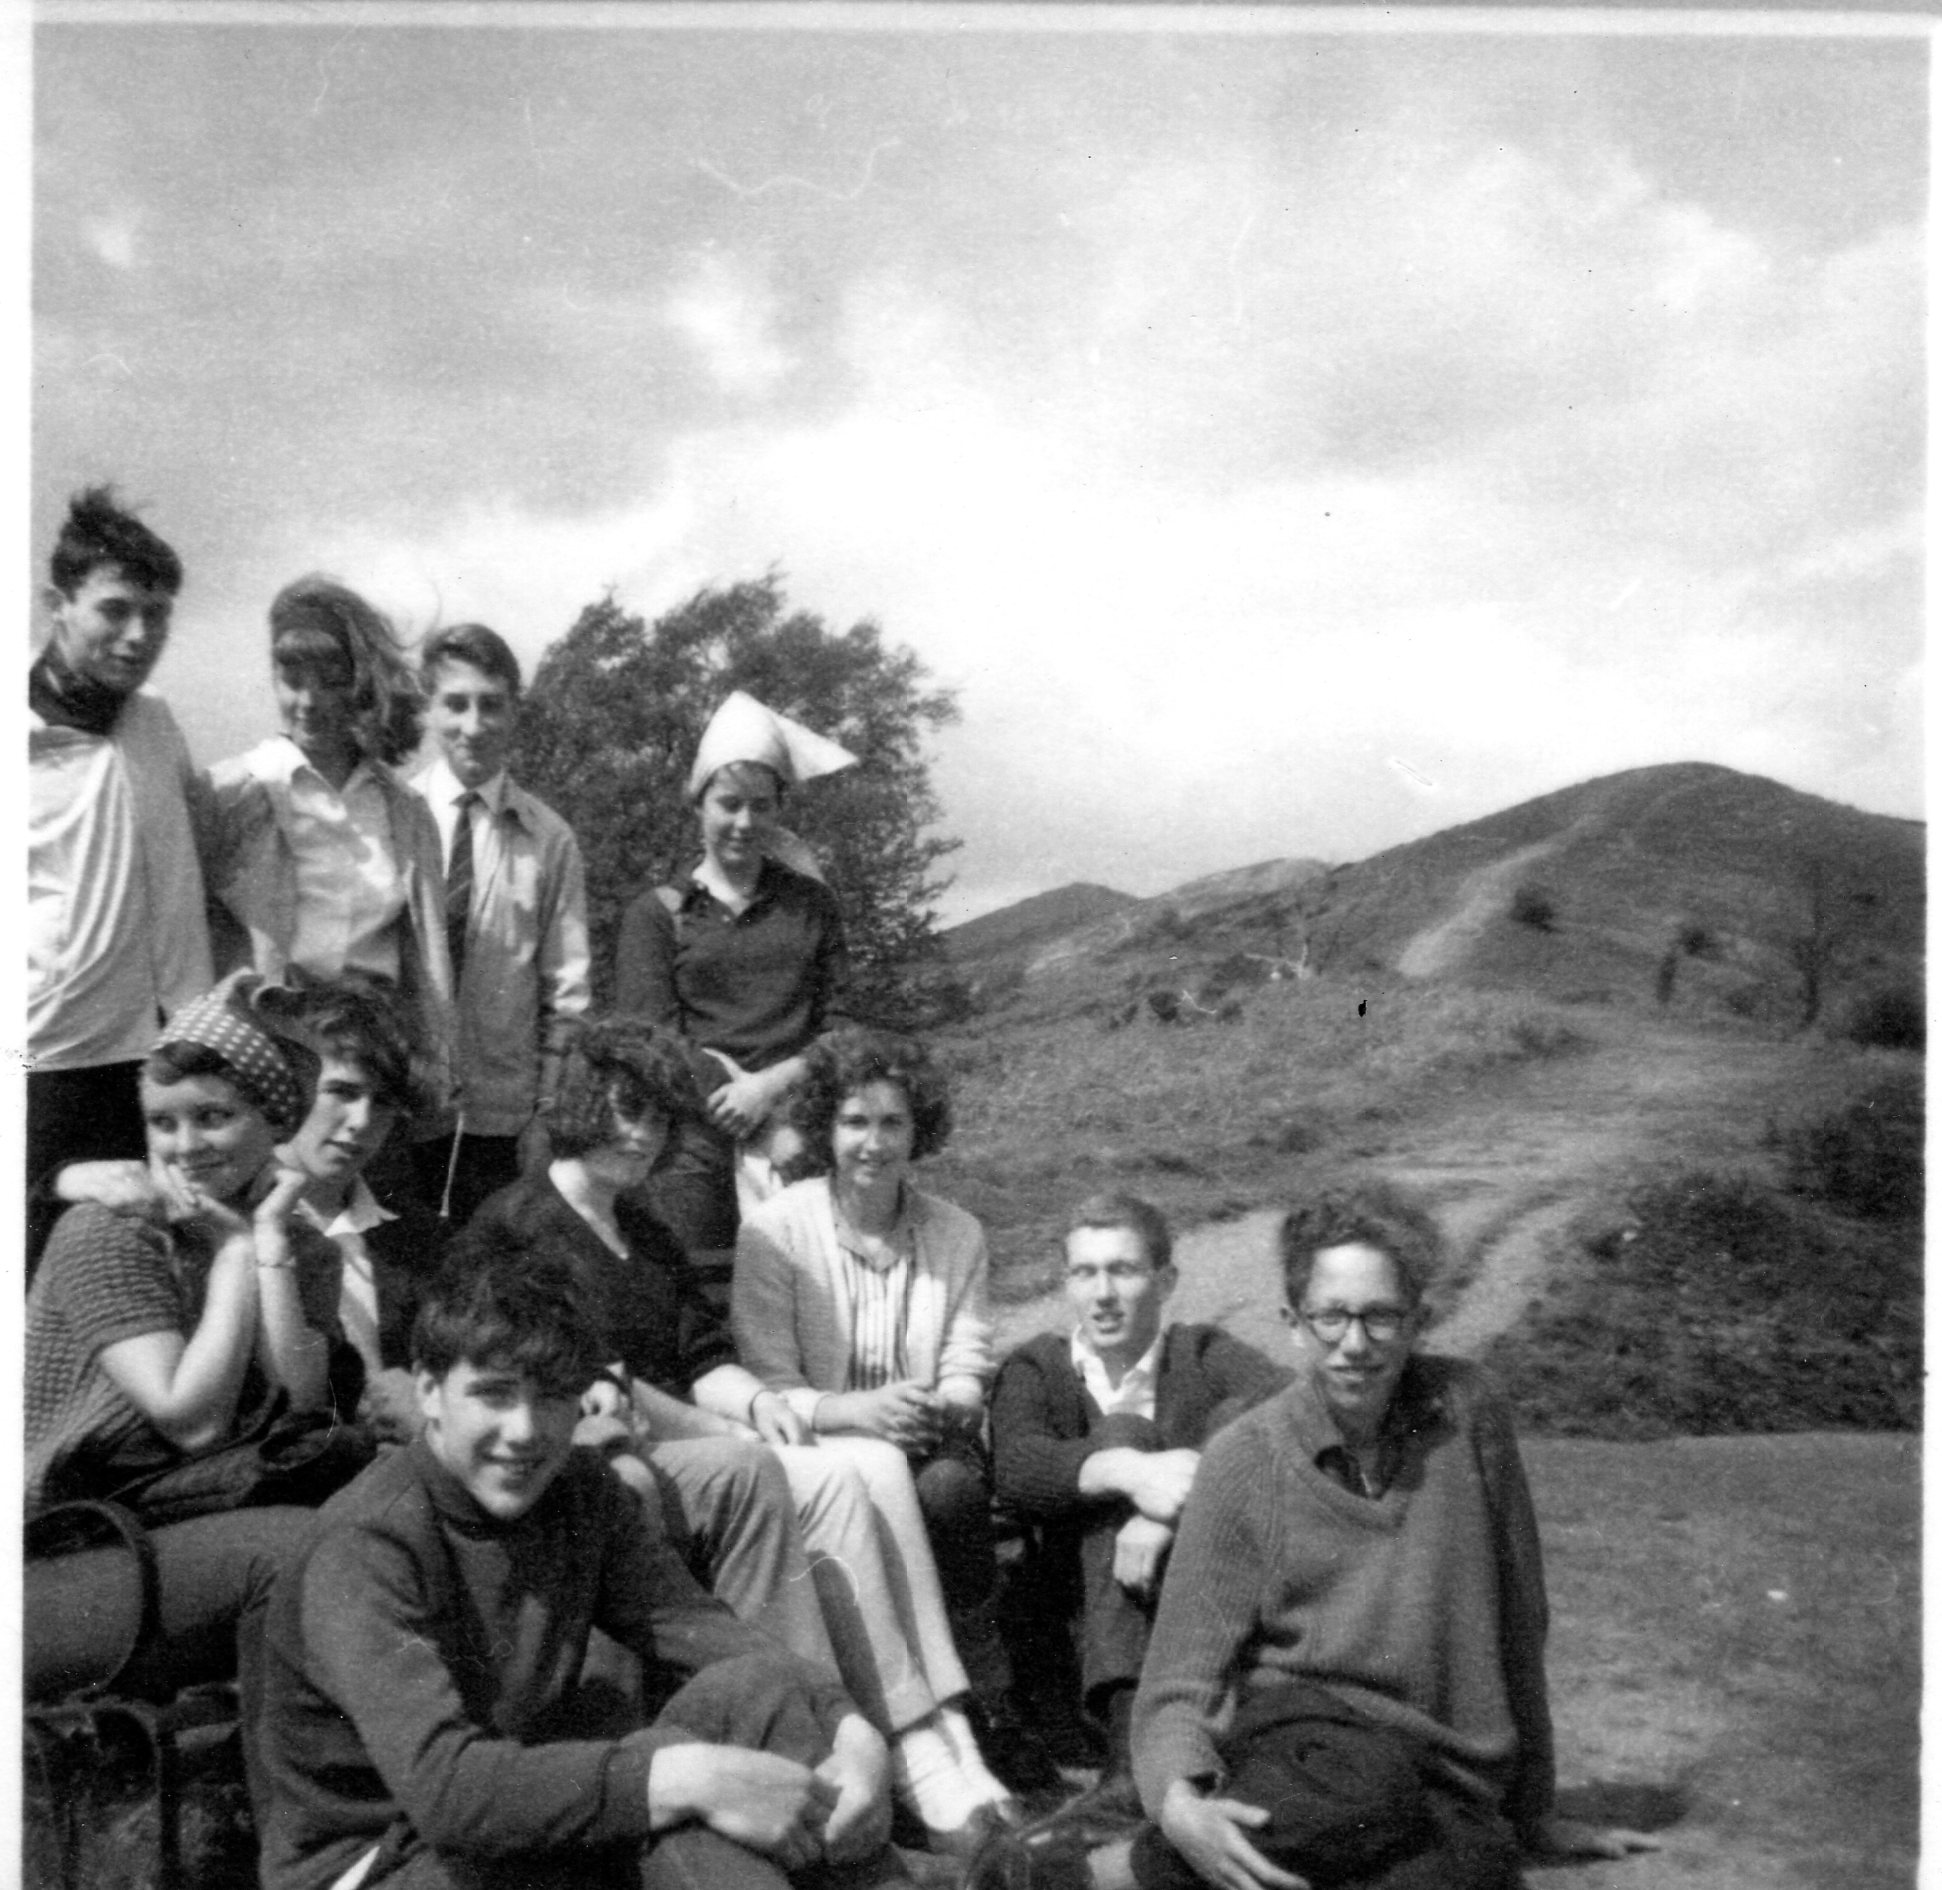 Sixth Form Outing Malvern 1965 John Withers, Jill Stanley, Peter Ellis, Vicki Franklin, Anne Smith, Trevor Watchorn, Nancy Righton, Diane Pettifer,Andrew Palmer, Chris Higley